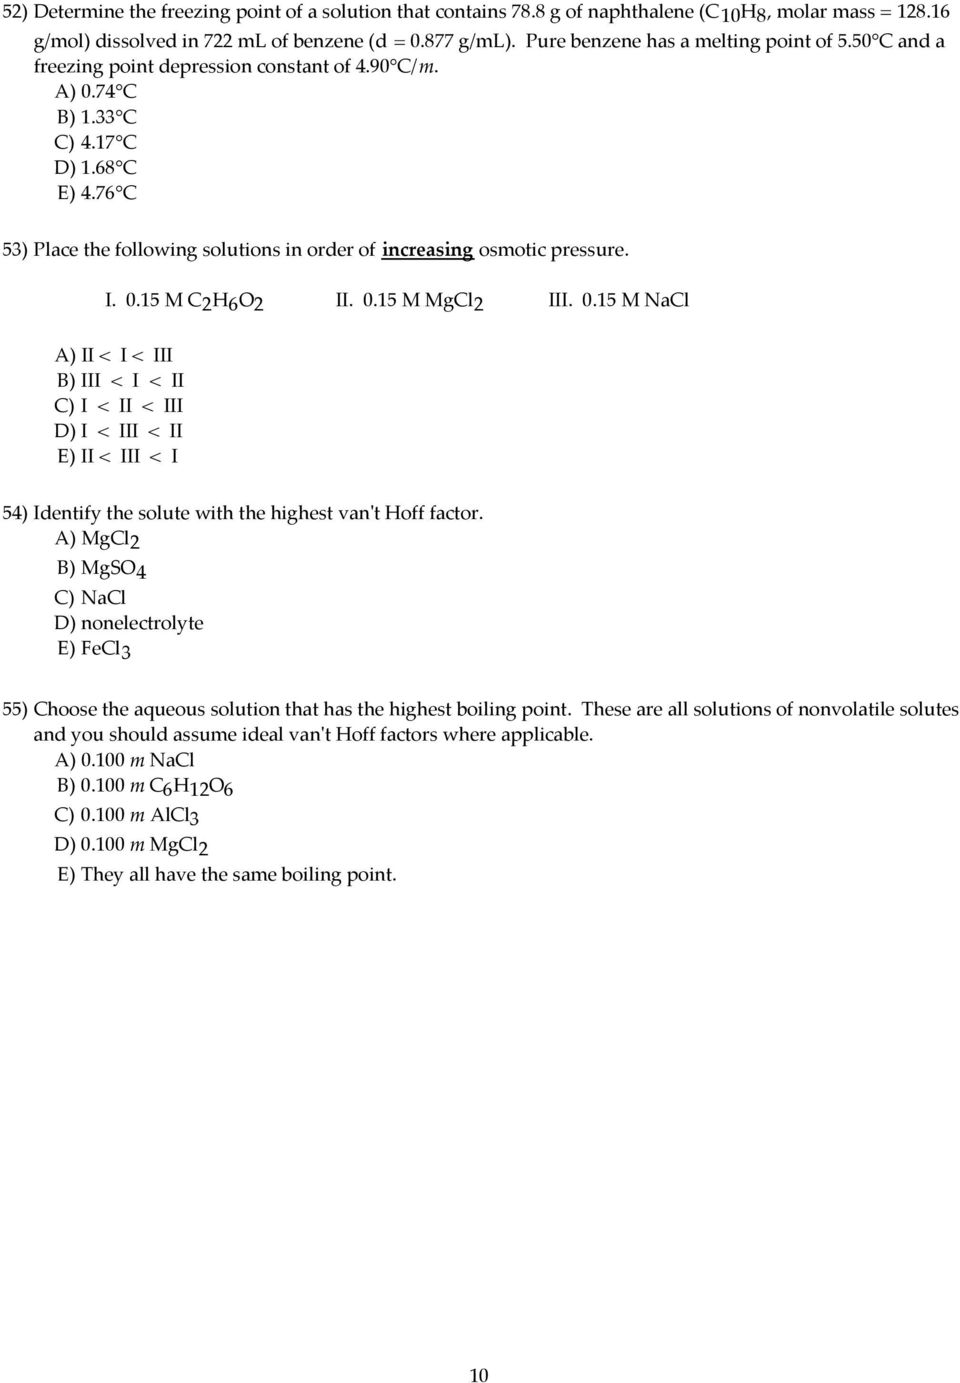 hight resolution of 76 c 53 place the following solutions in order of increasing osmotic pressure i